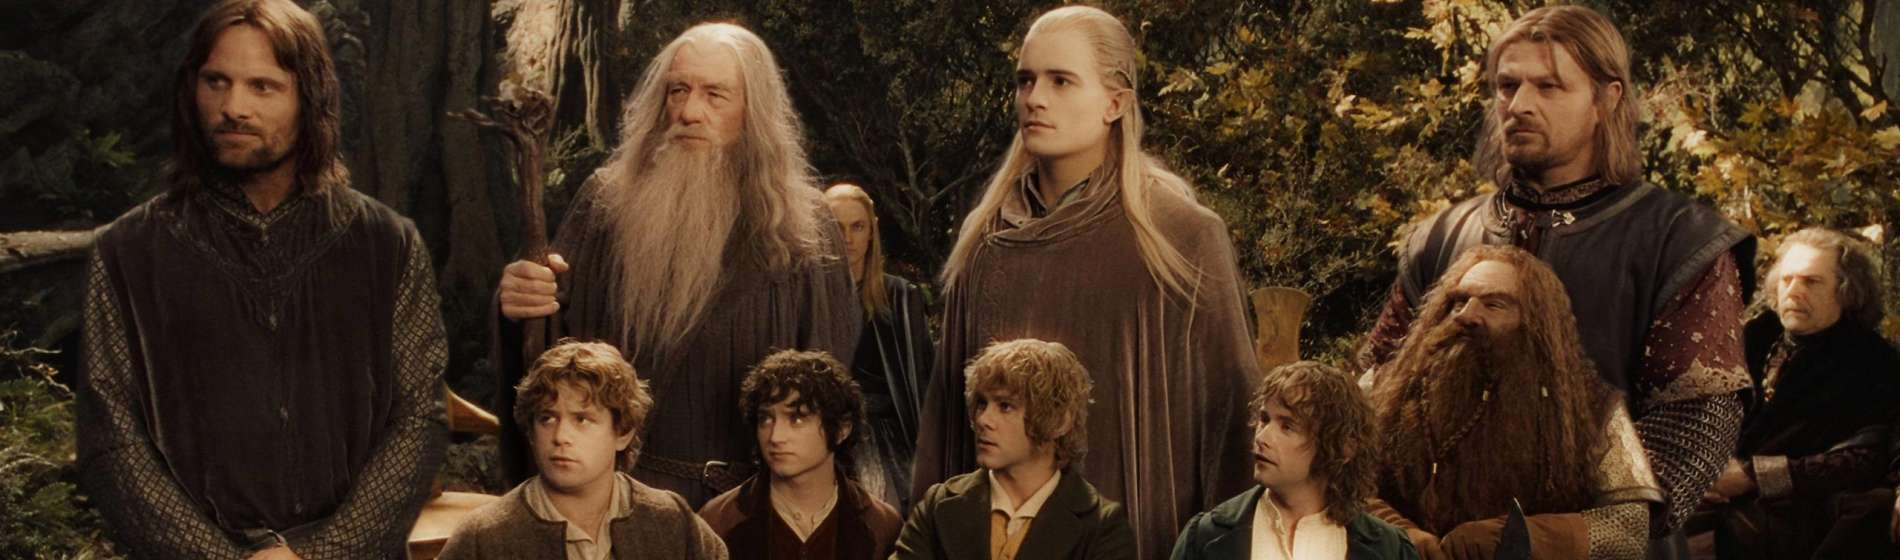 Lord of the Rings 4K UHD Blu-ray Review